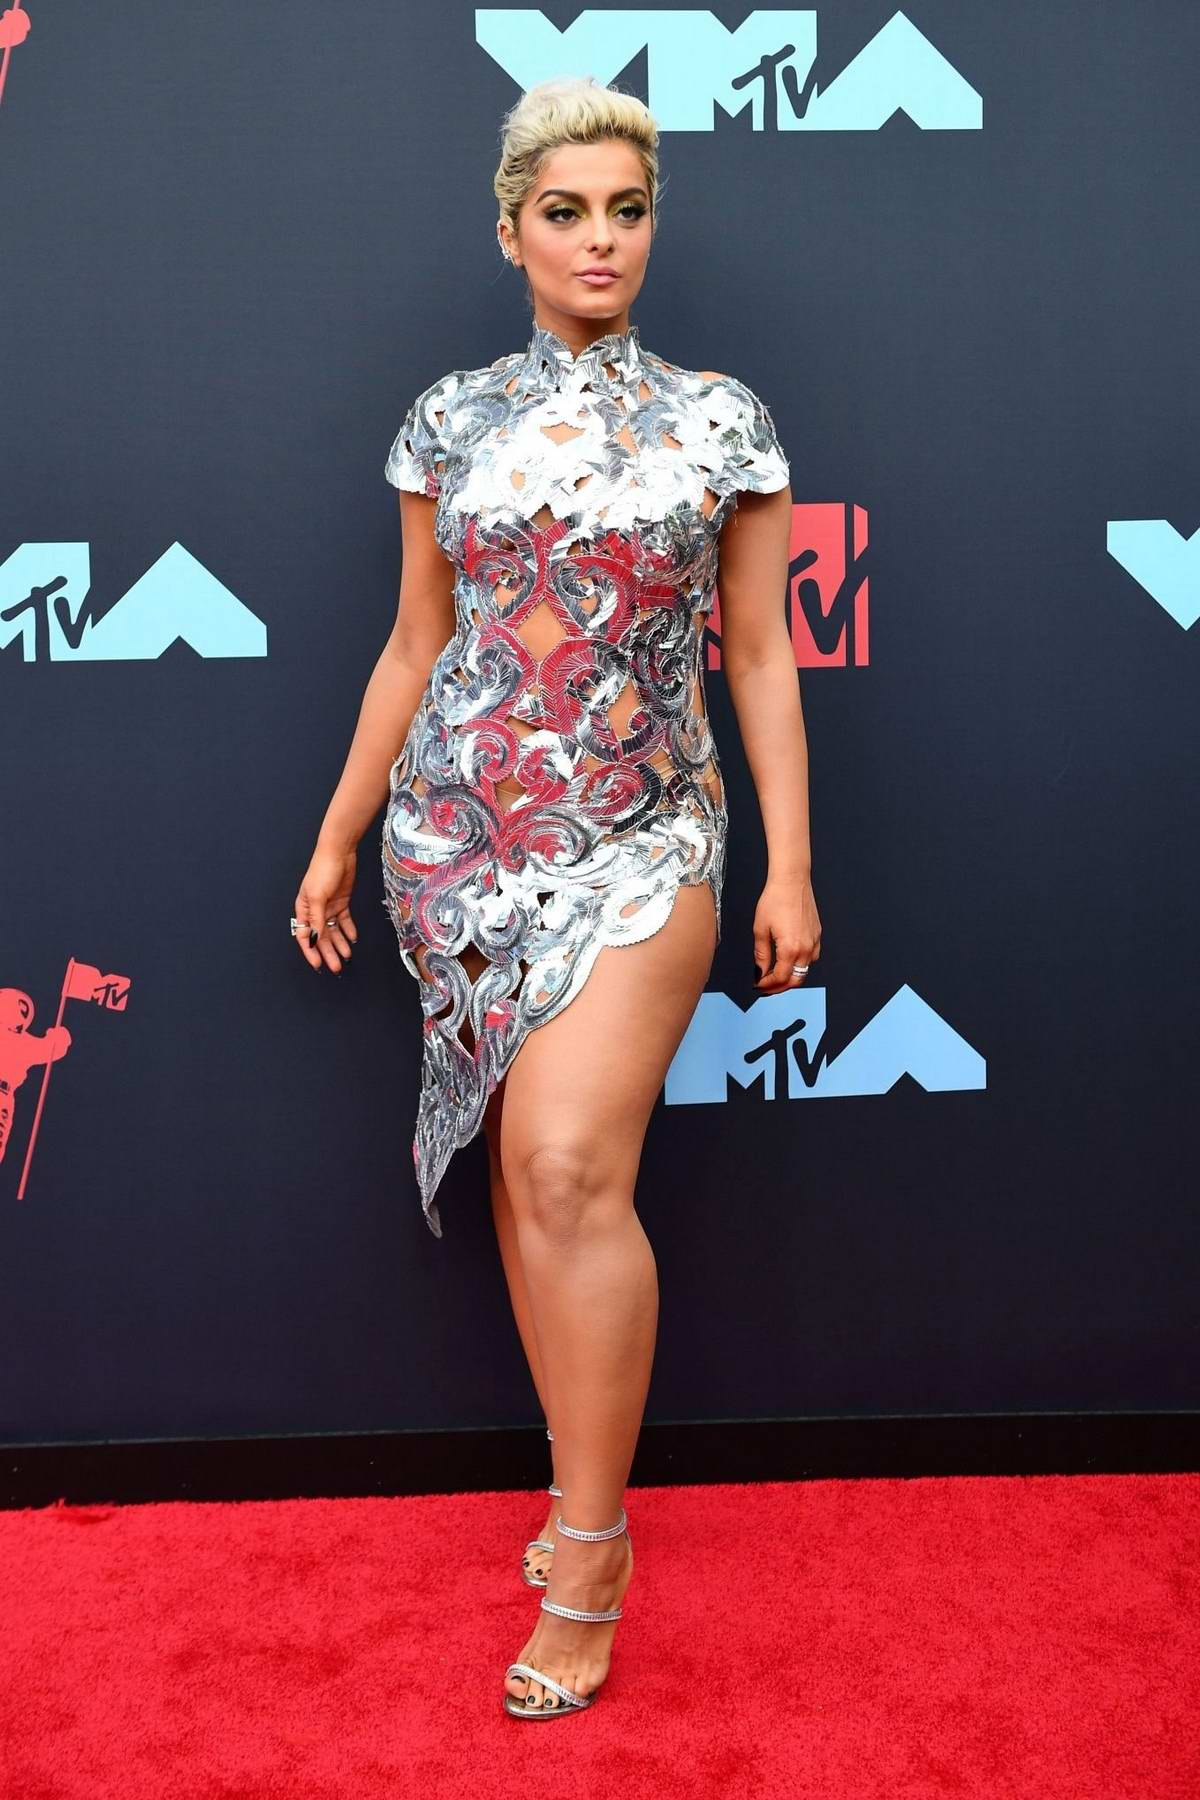 Bebe Rexha attends the 2019 MTV Video Music Awards at Prudential Center in Newark, New Jersey